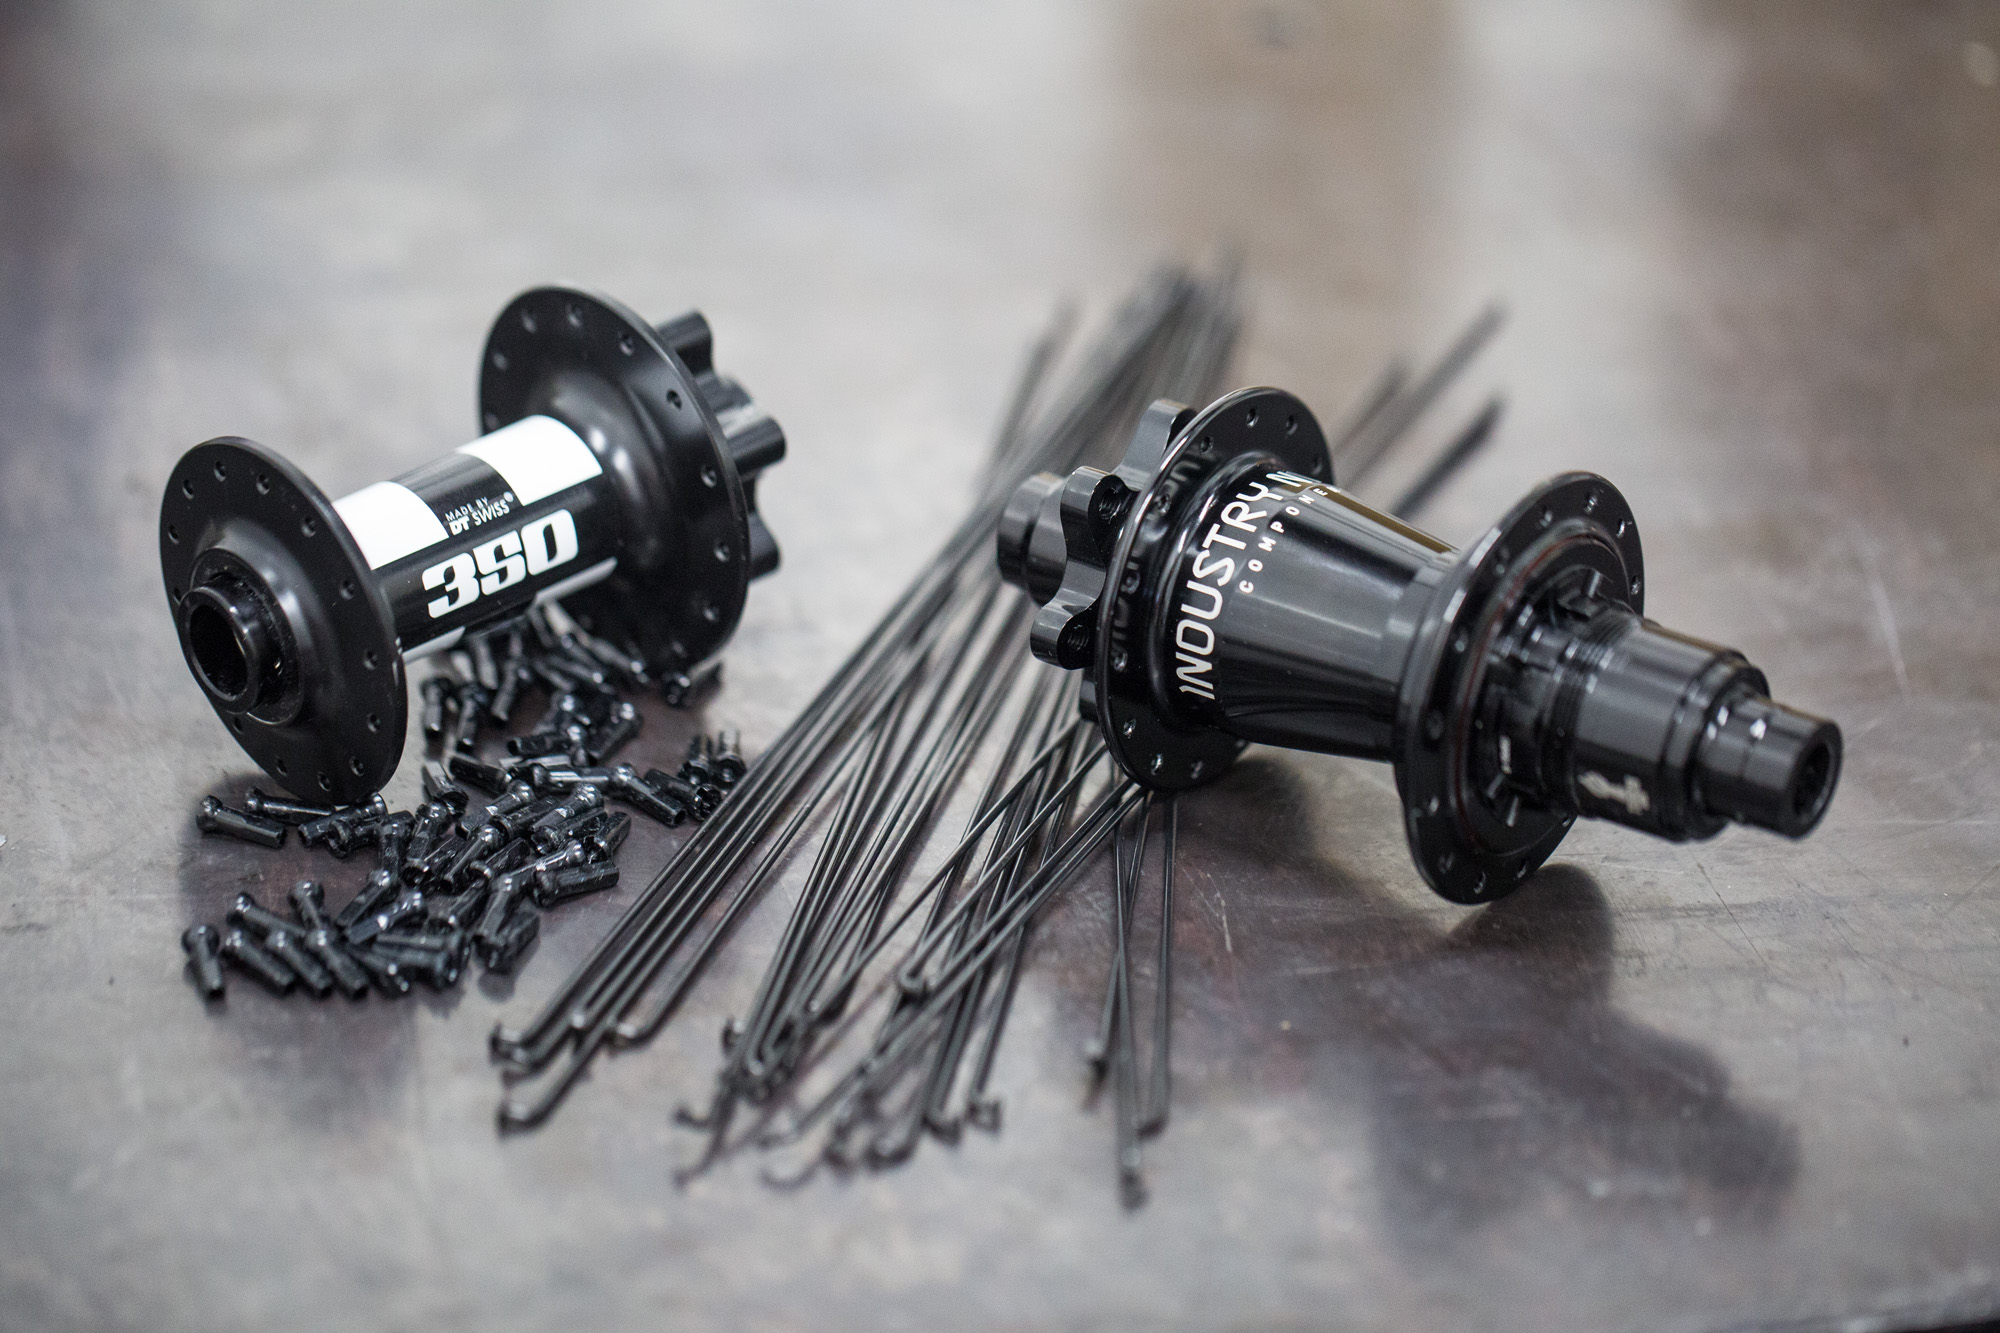 All the components used to build up the Reserve wheels are easily sourced through your local bike shop.